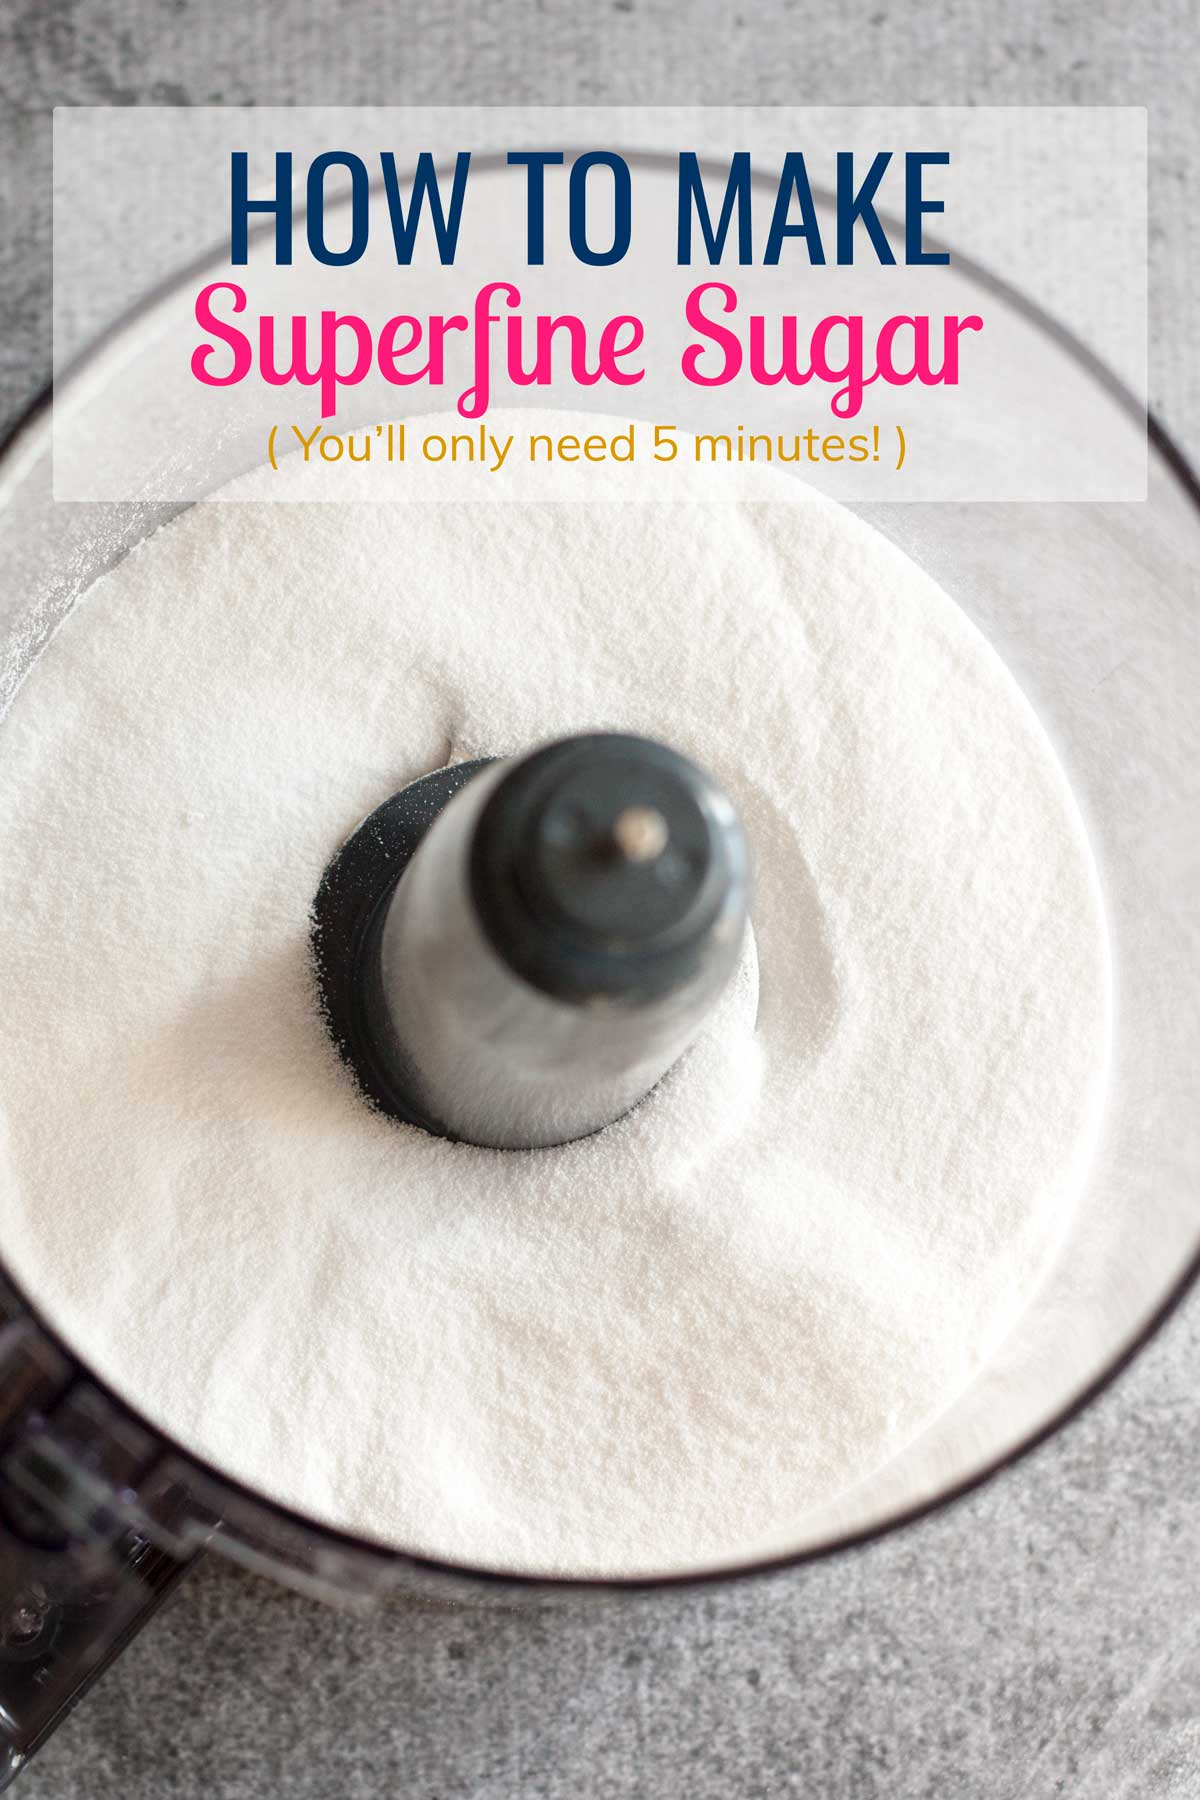 What is superfine sugar and how to make it